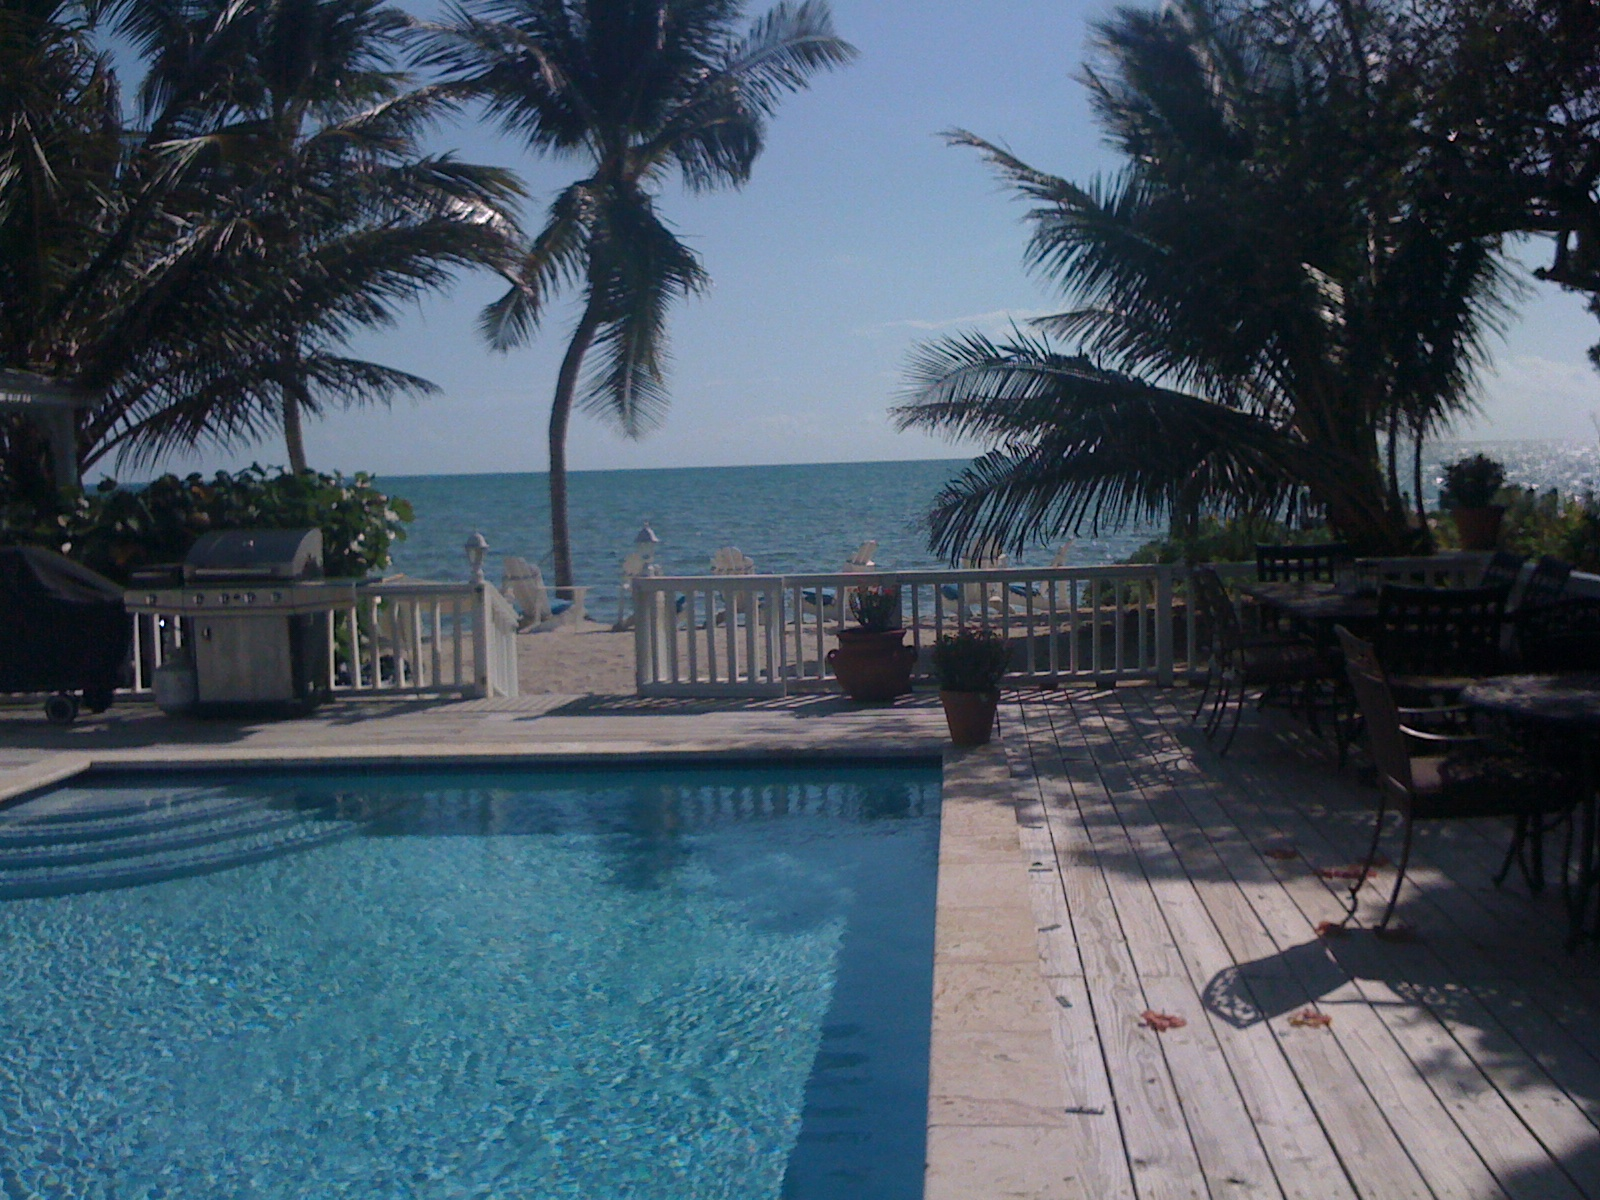 Vacation Rental with pool Islamorada Floriday Keys